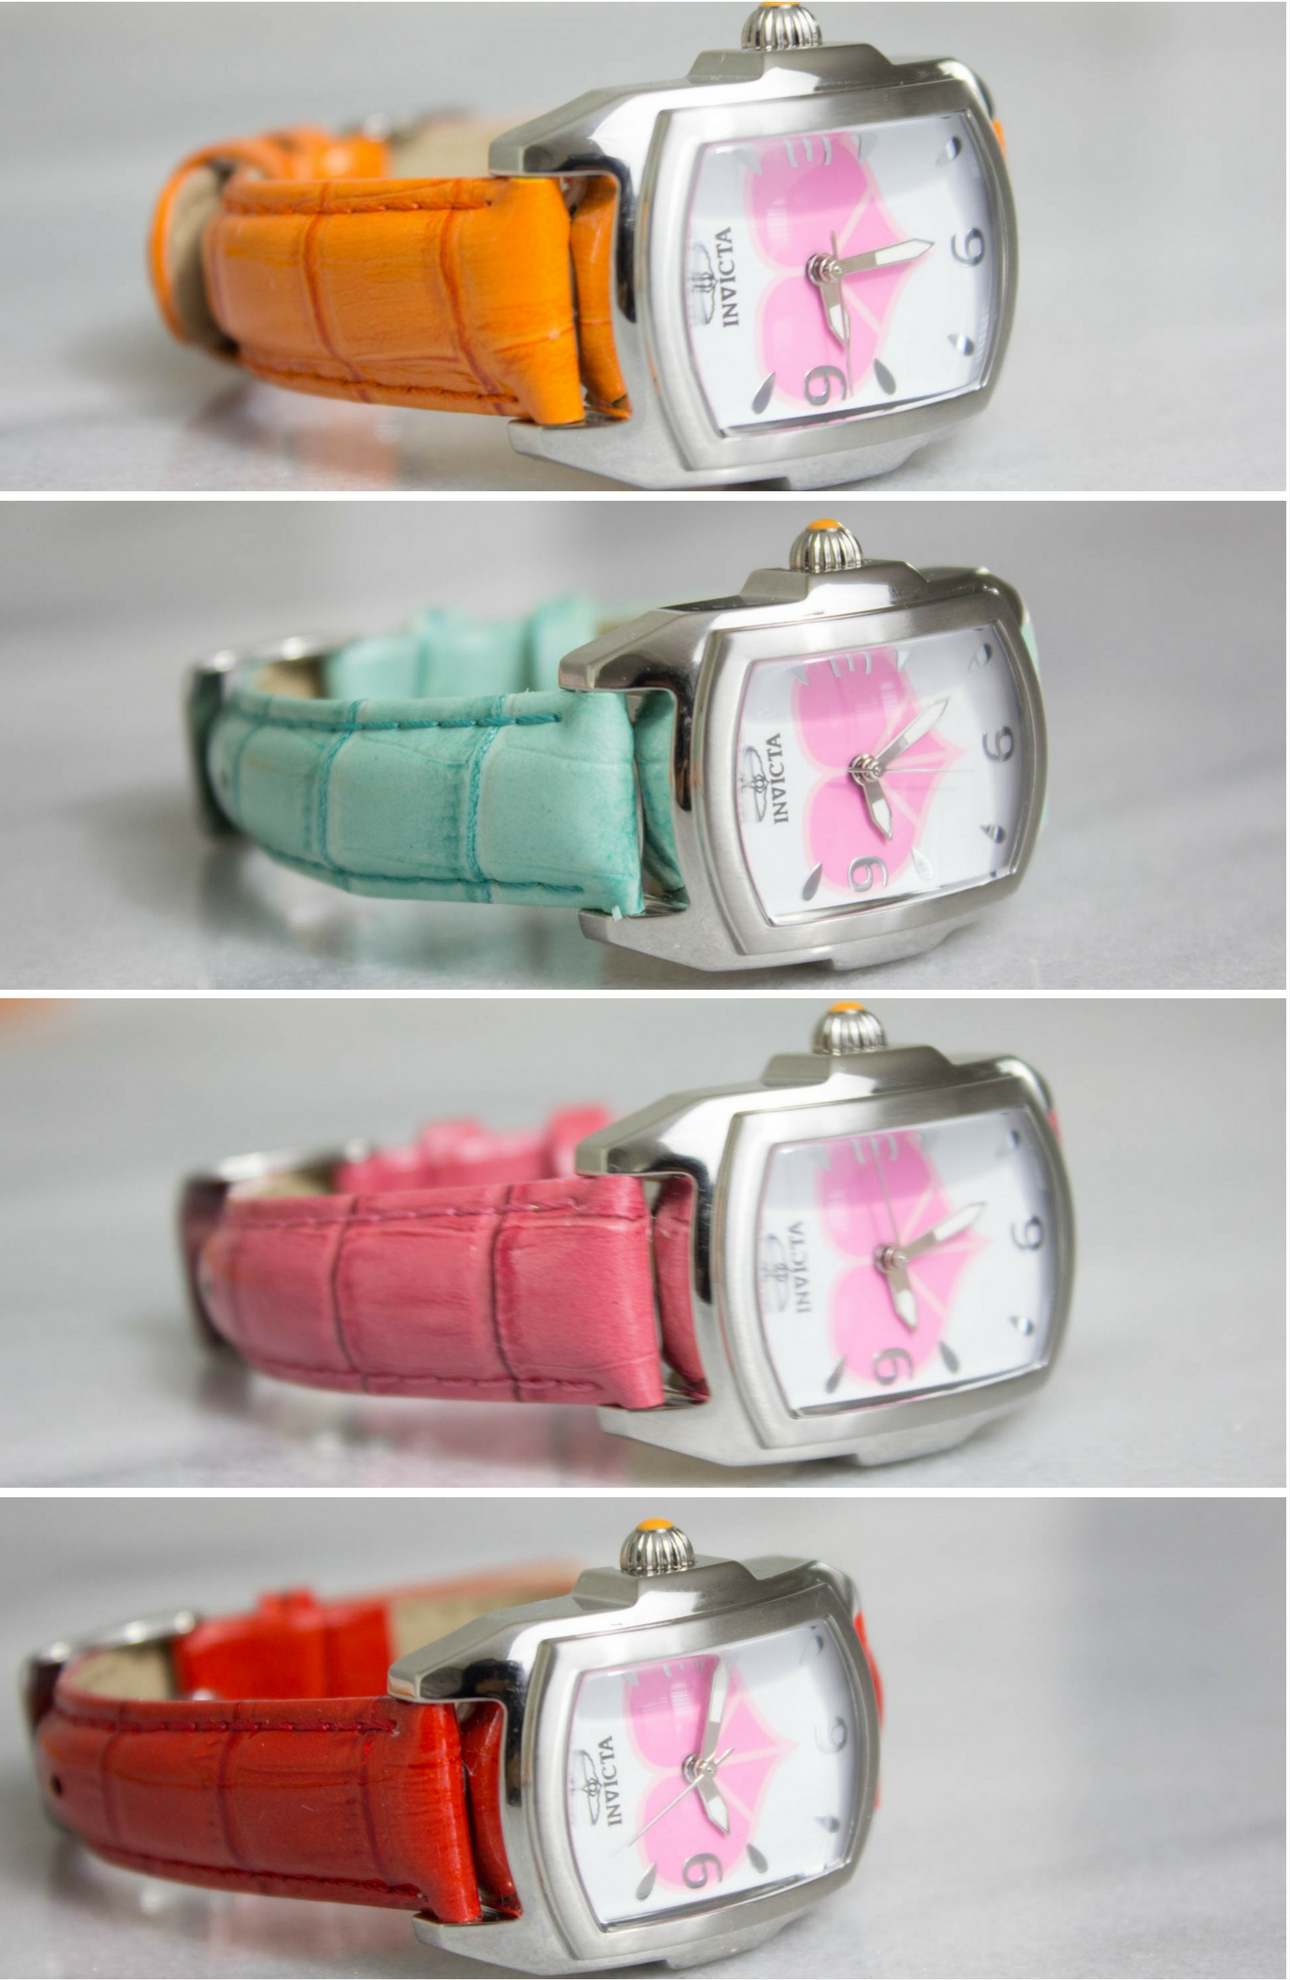 This Watch Is Gorgeous With A Heart Detail On The Dial It Also Comes 7 Leather Straps In White Black Aqua Yellow Pink Red And Orange My Fav